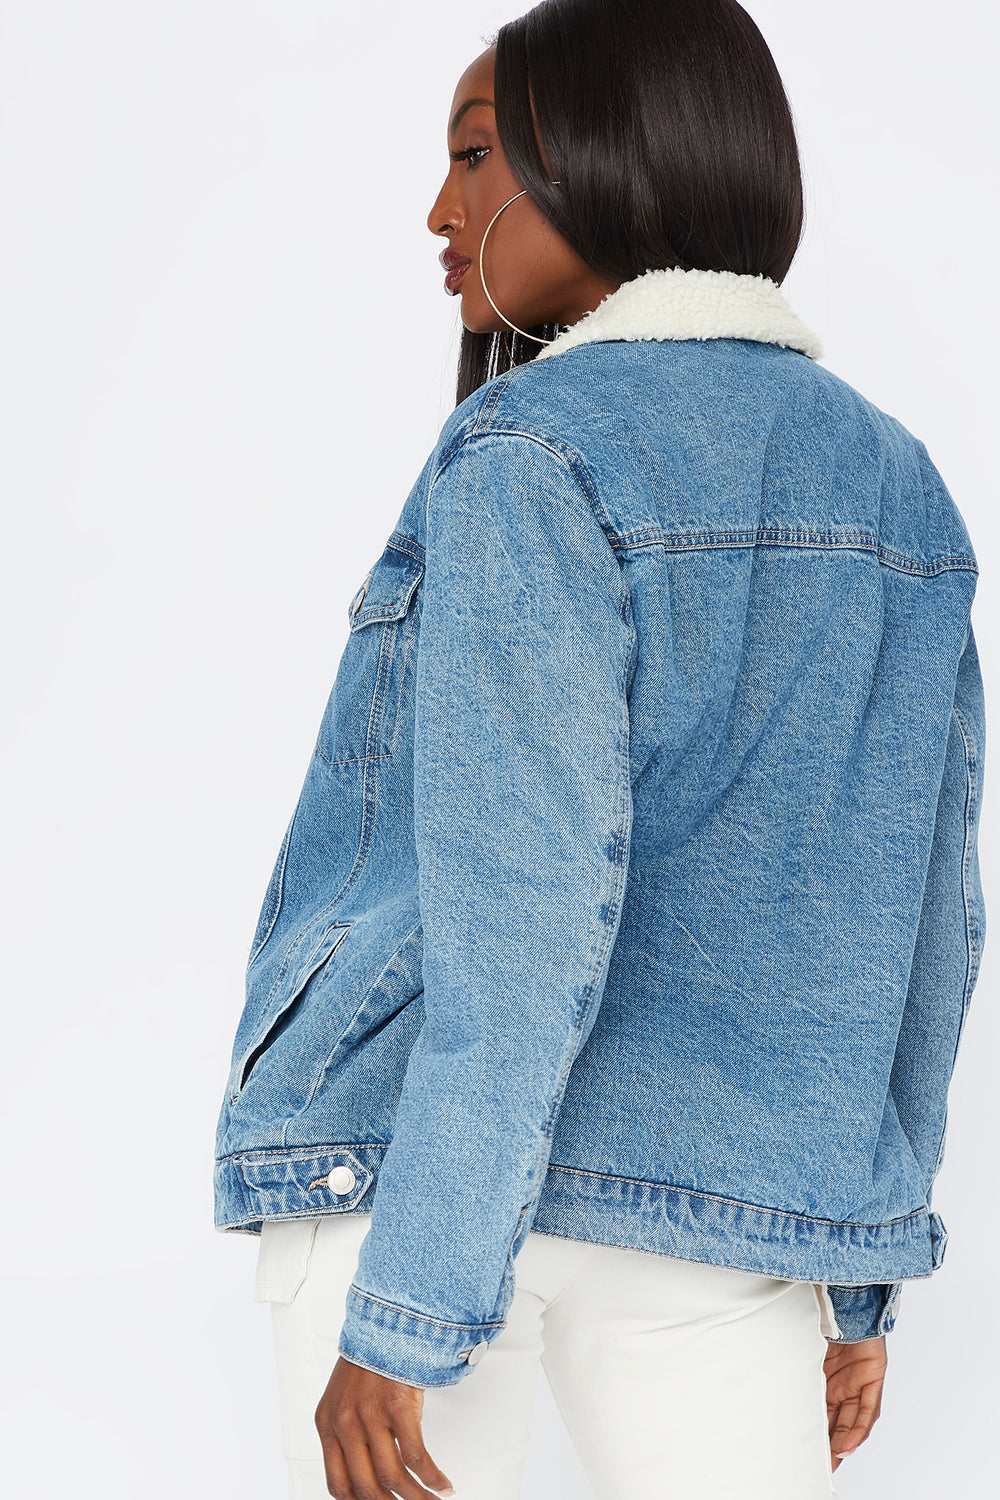 Denim Sherpa Trucker Jacket Denim Blue